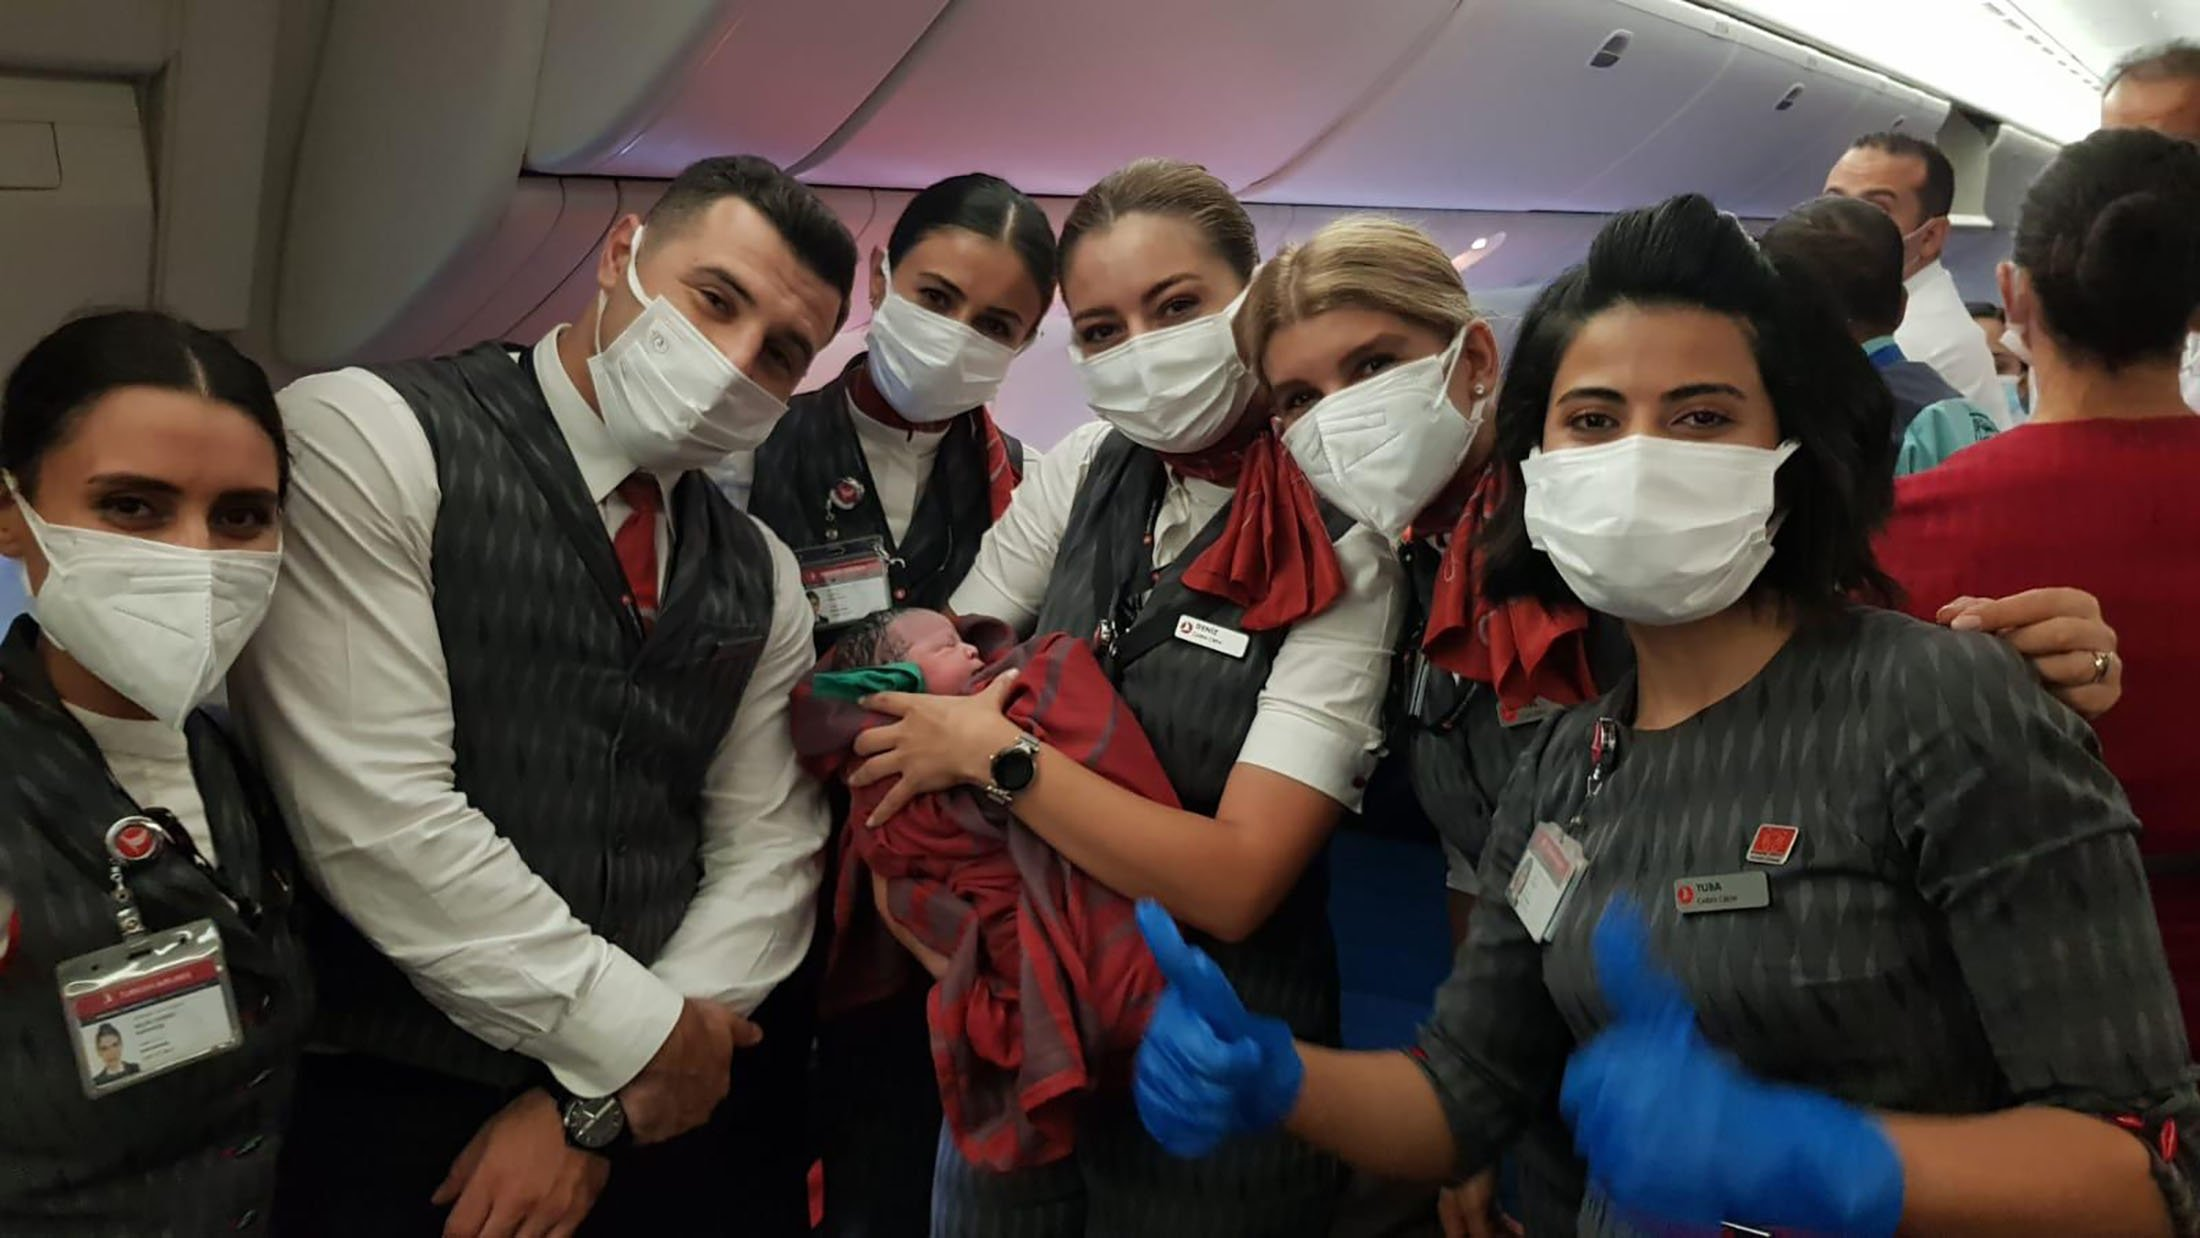 Turkish Airlines crew members pose with newly born Afghan baby girl Havva, which translates as Eve in English, during a flight between Dubai and Birmingham, U.K., Aug. 28, 2021. (Turkish Airlines via AP)